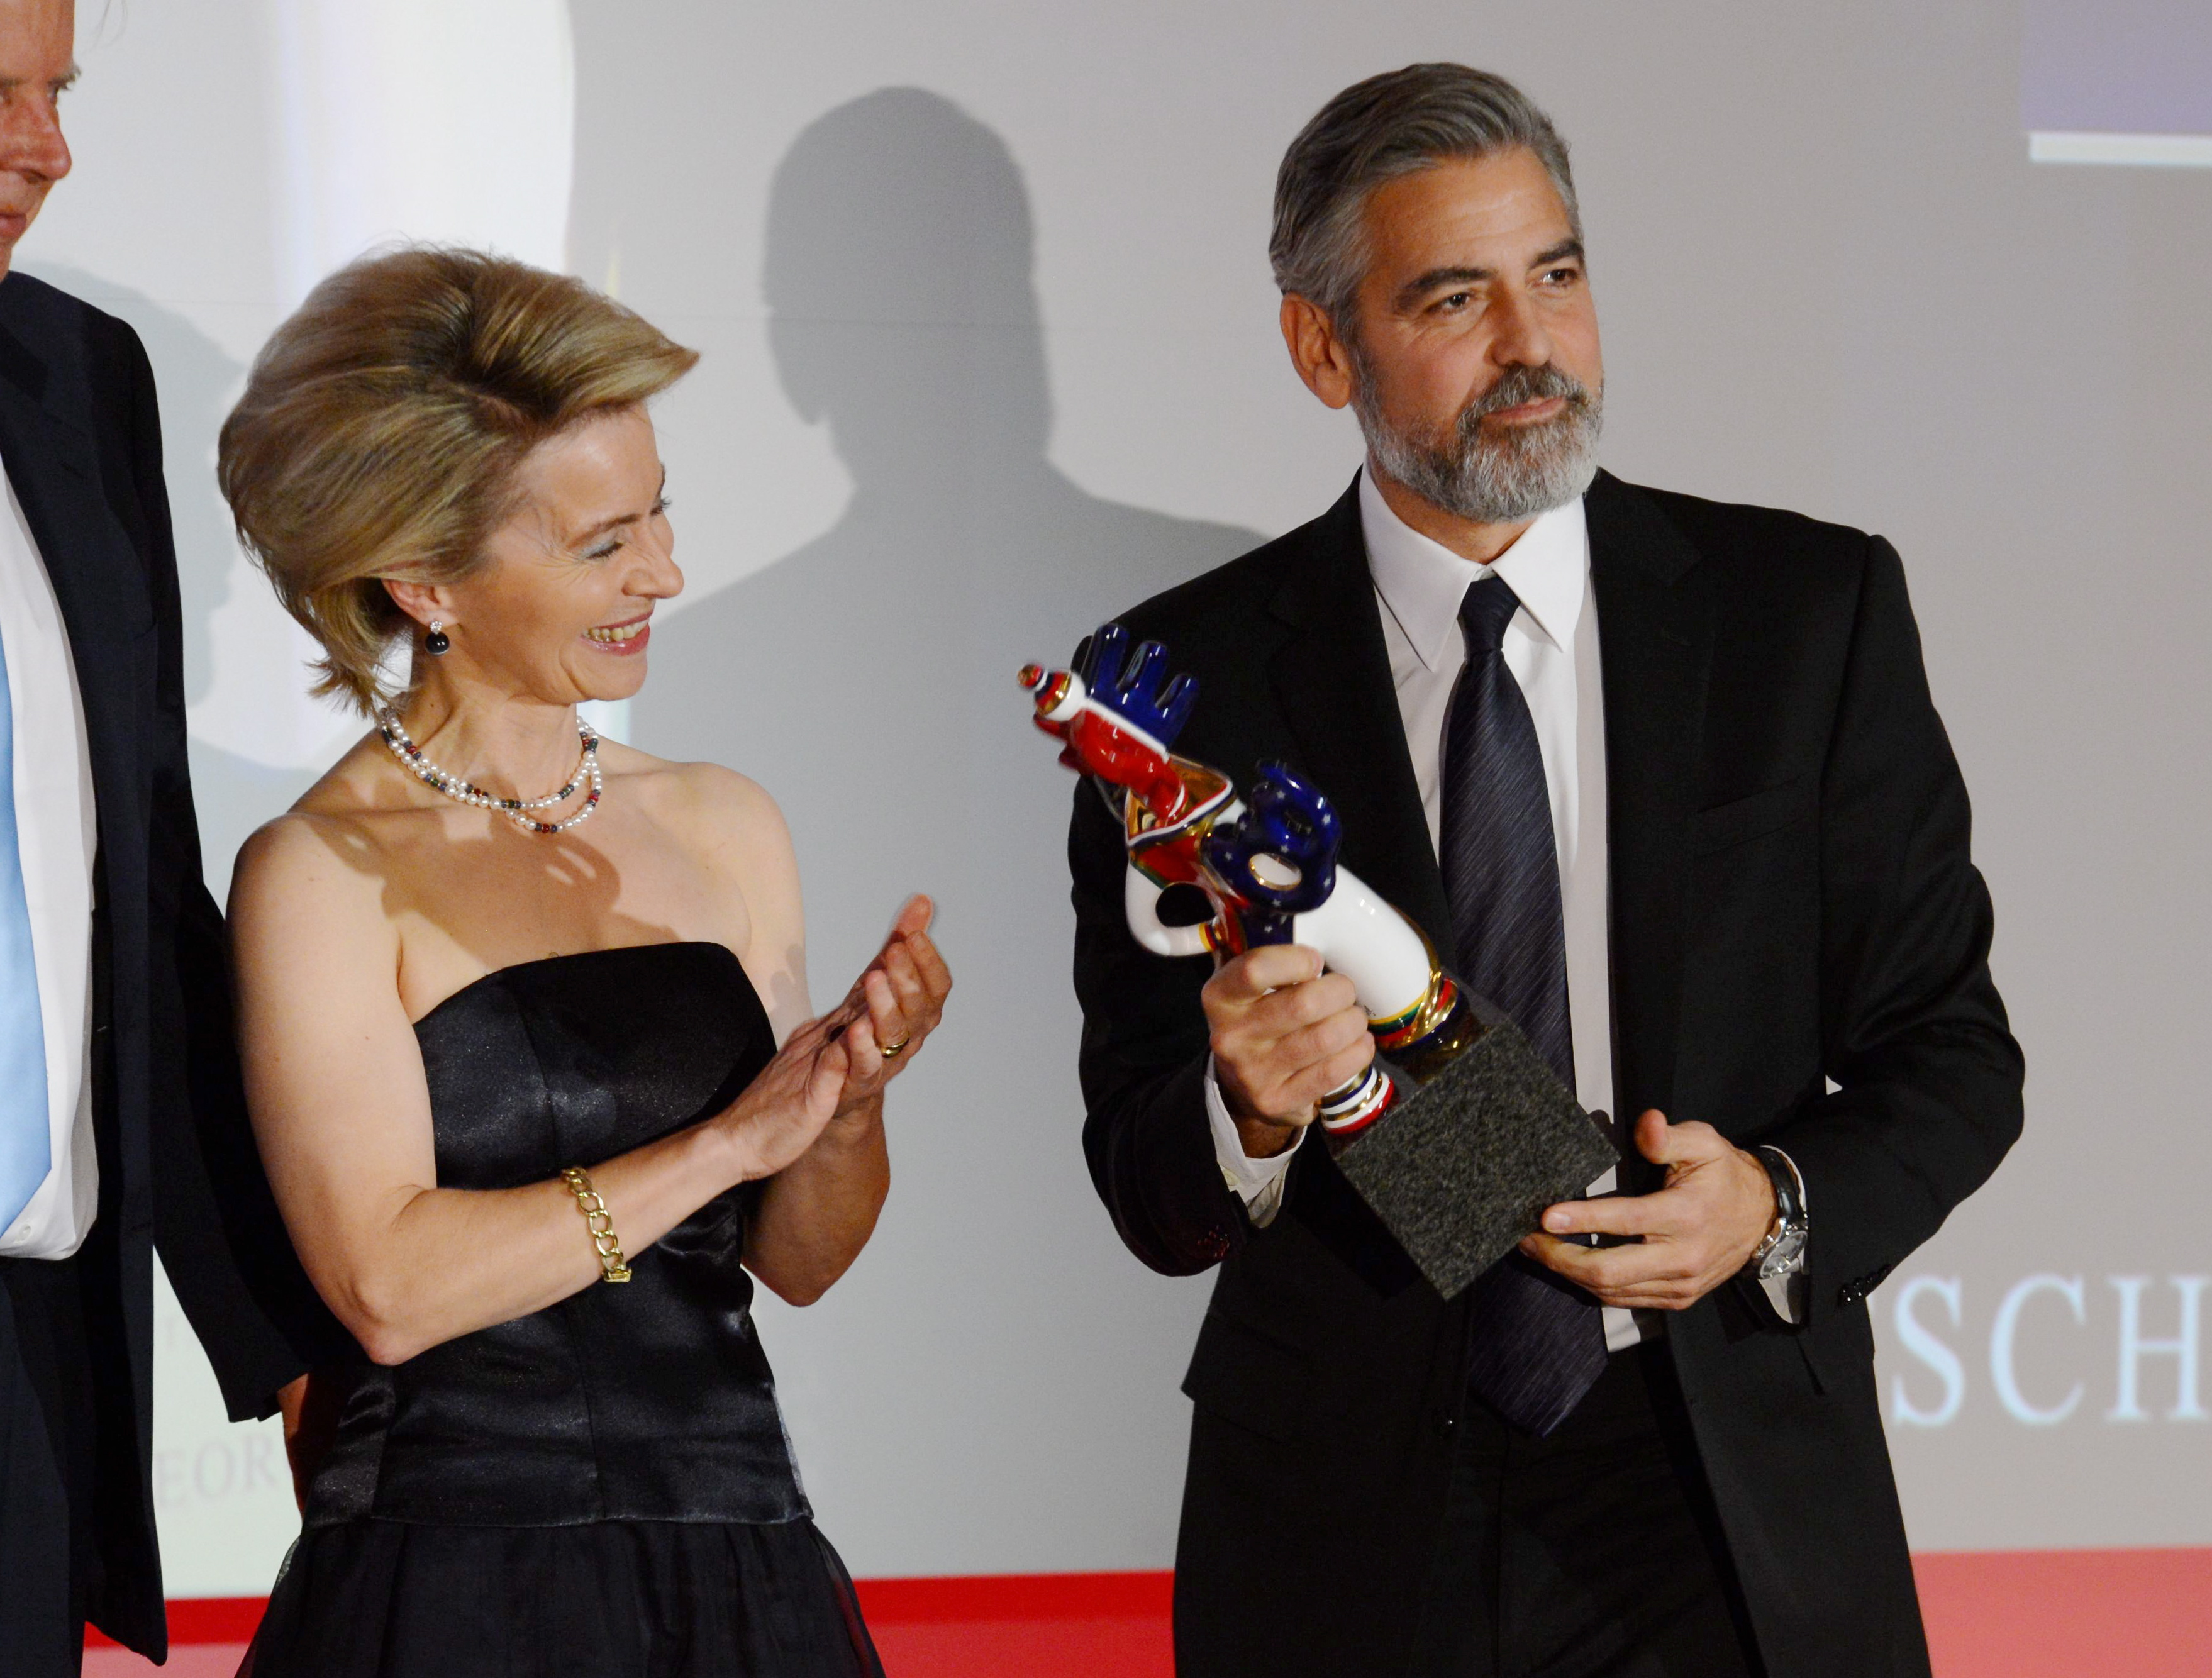 George Clooney accepted his award in Baden-Baden, Germany.